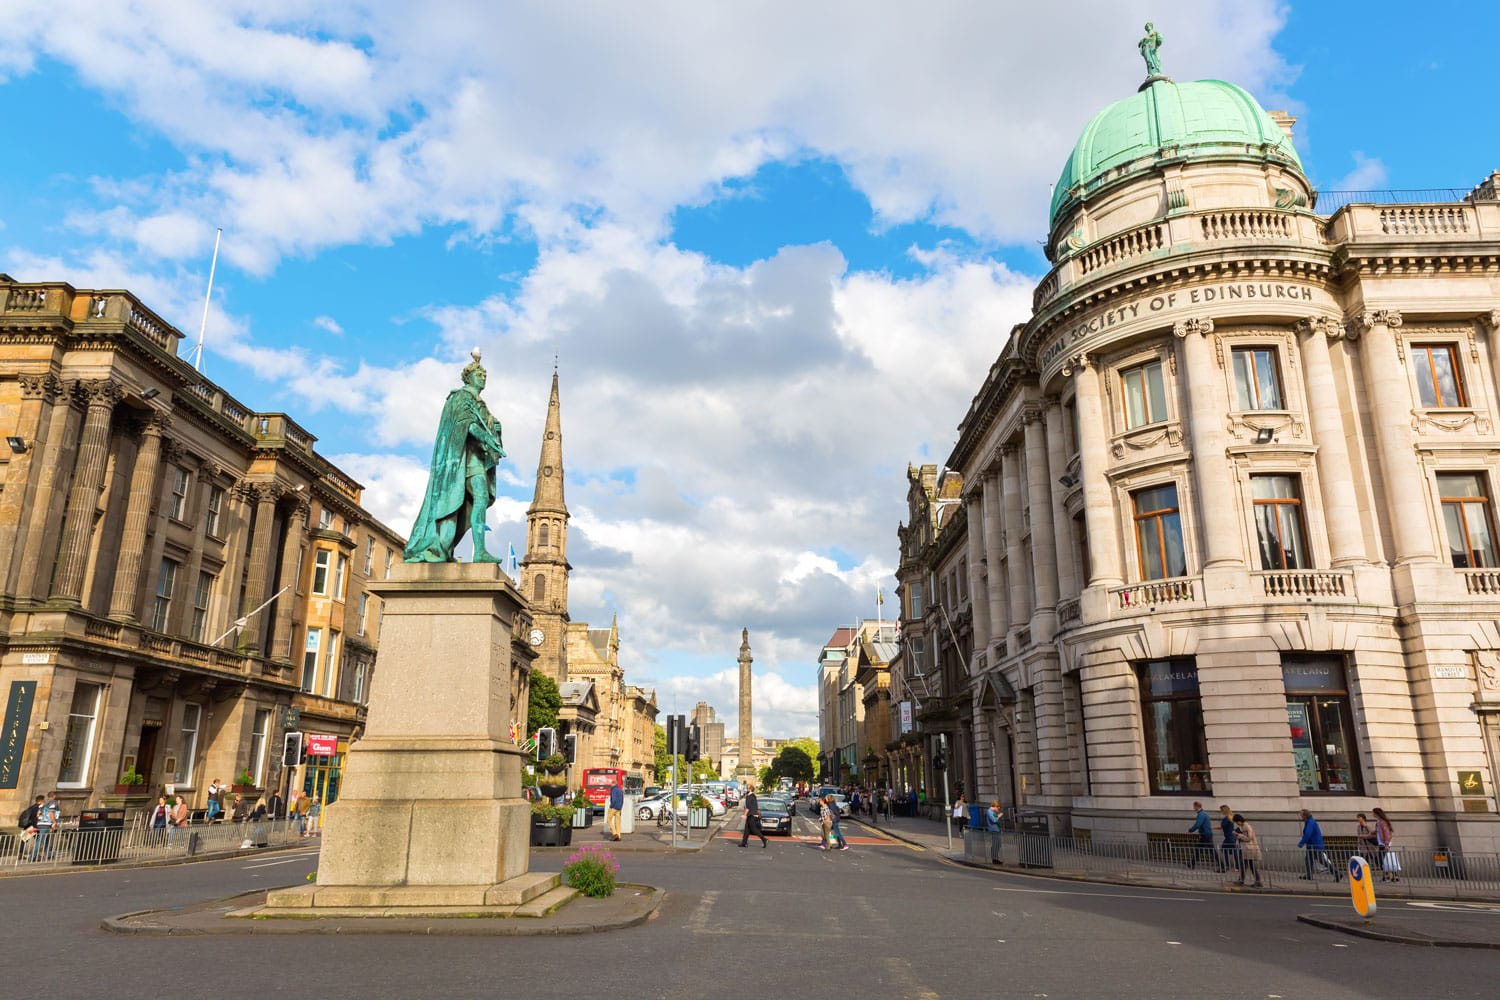 George Street with William Pitt statue in Edinburgh, Scotland